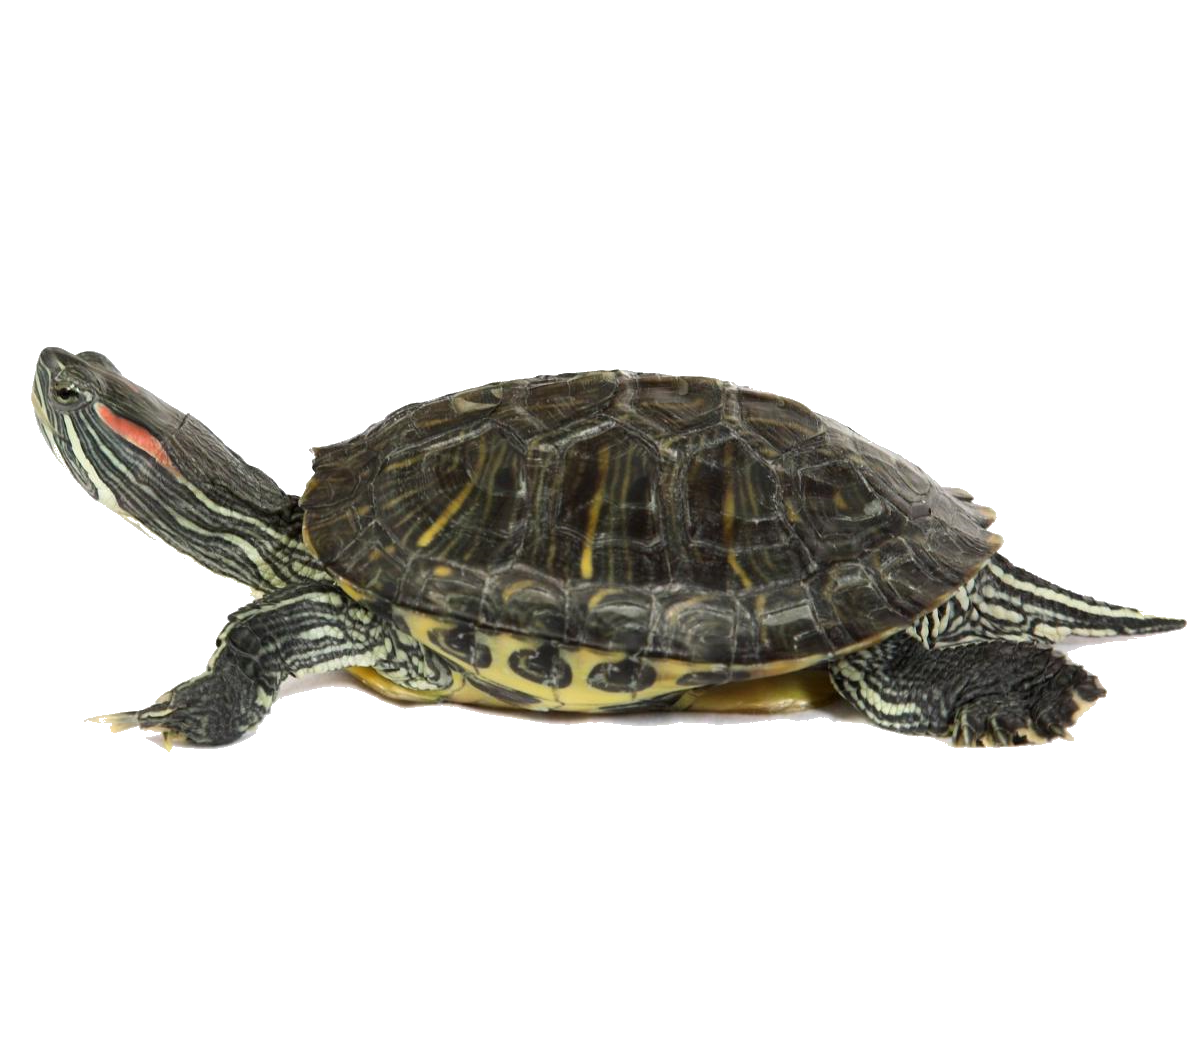 Turtle - Turtle Shell PNG HD